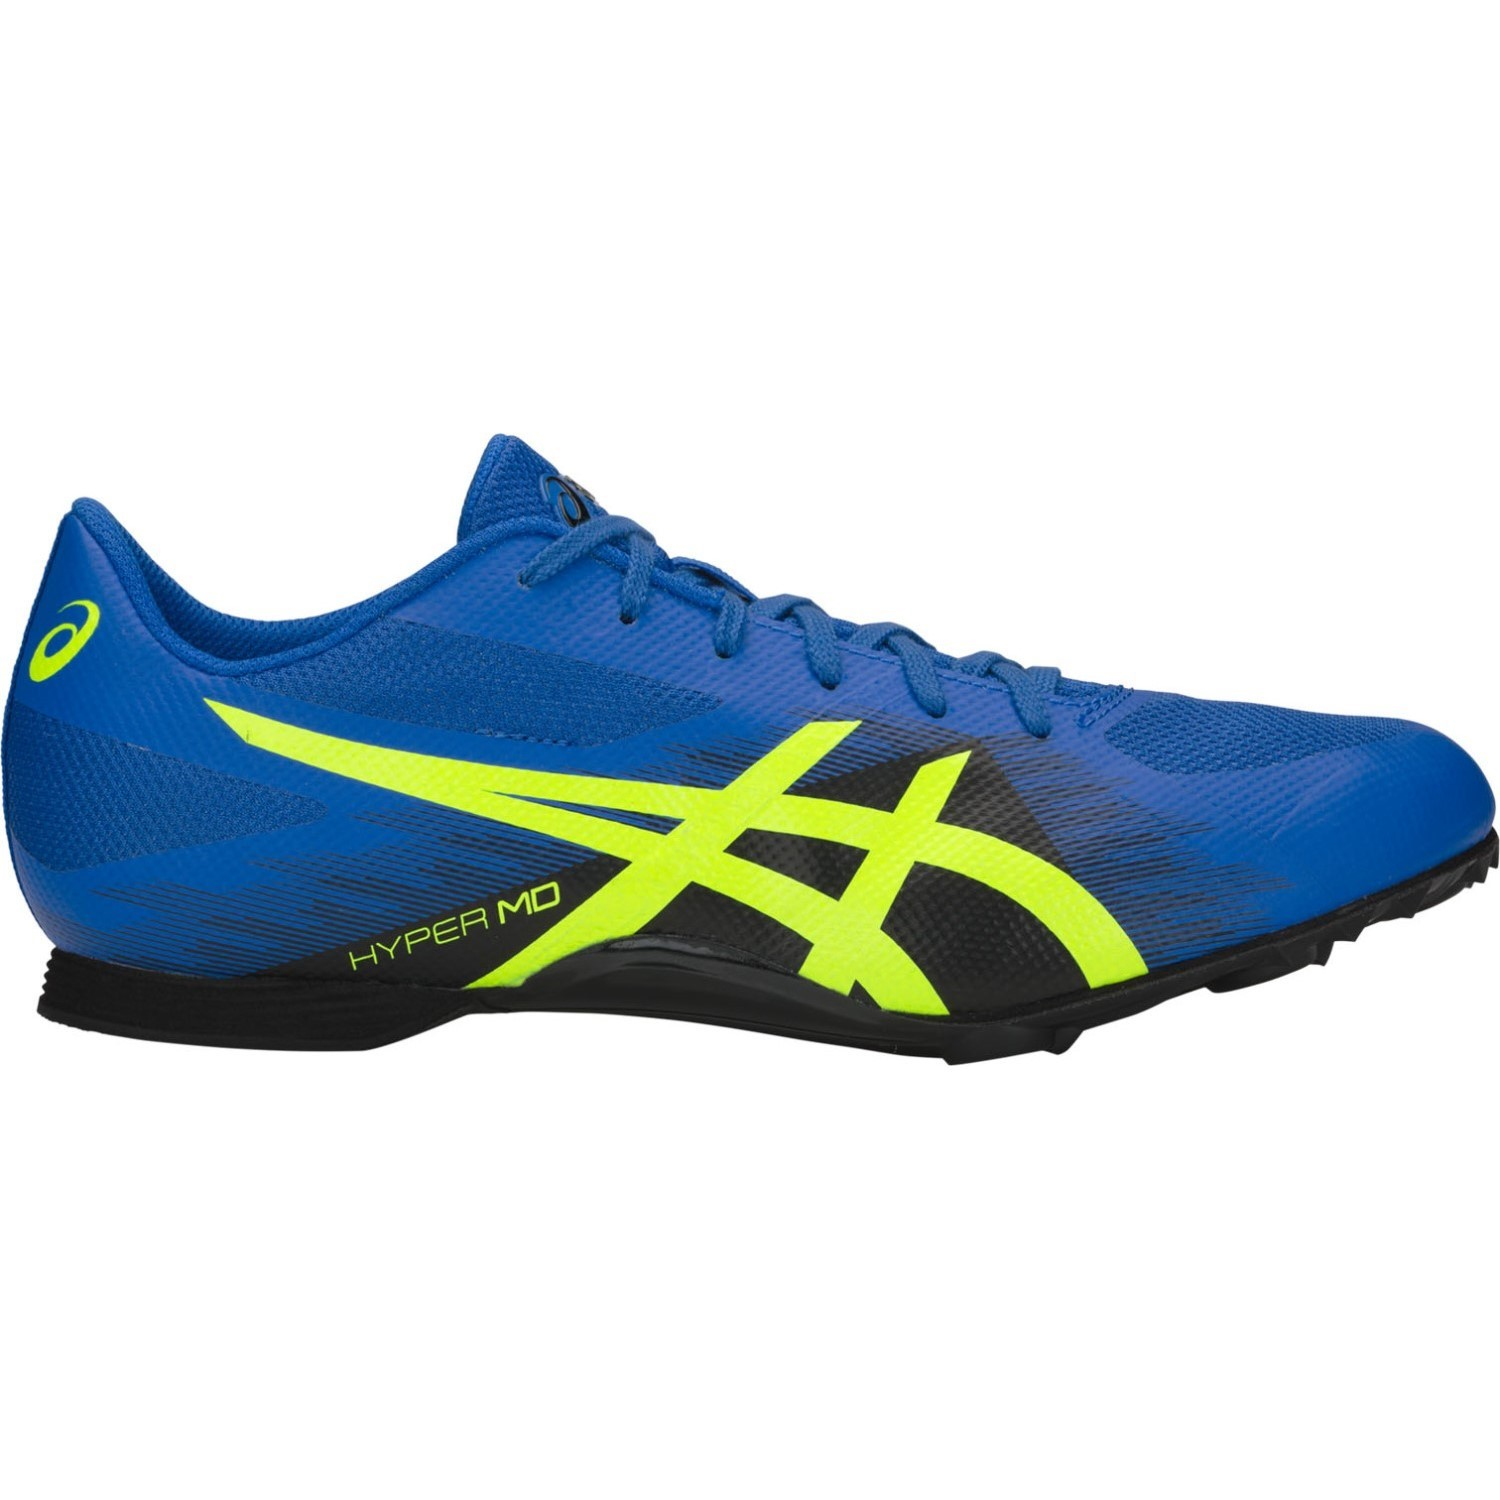 de251159b Asics Hyper MD 7 - Mens Middle Distance Track Spikes - Illusion Blue Hazard  Green